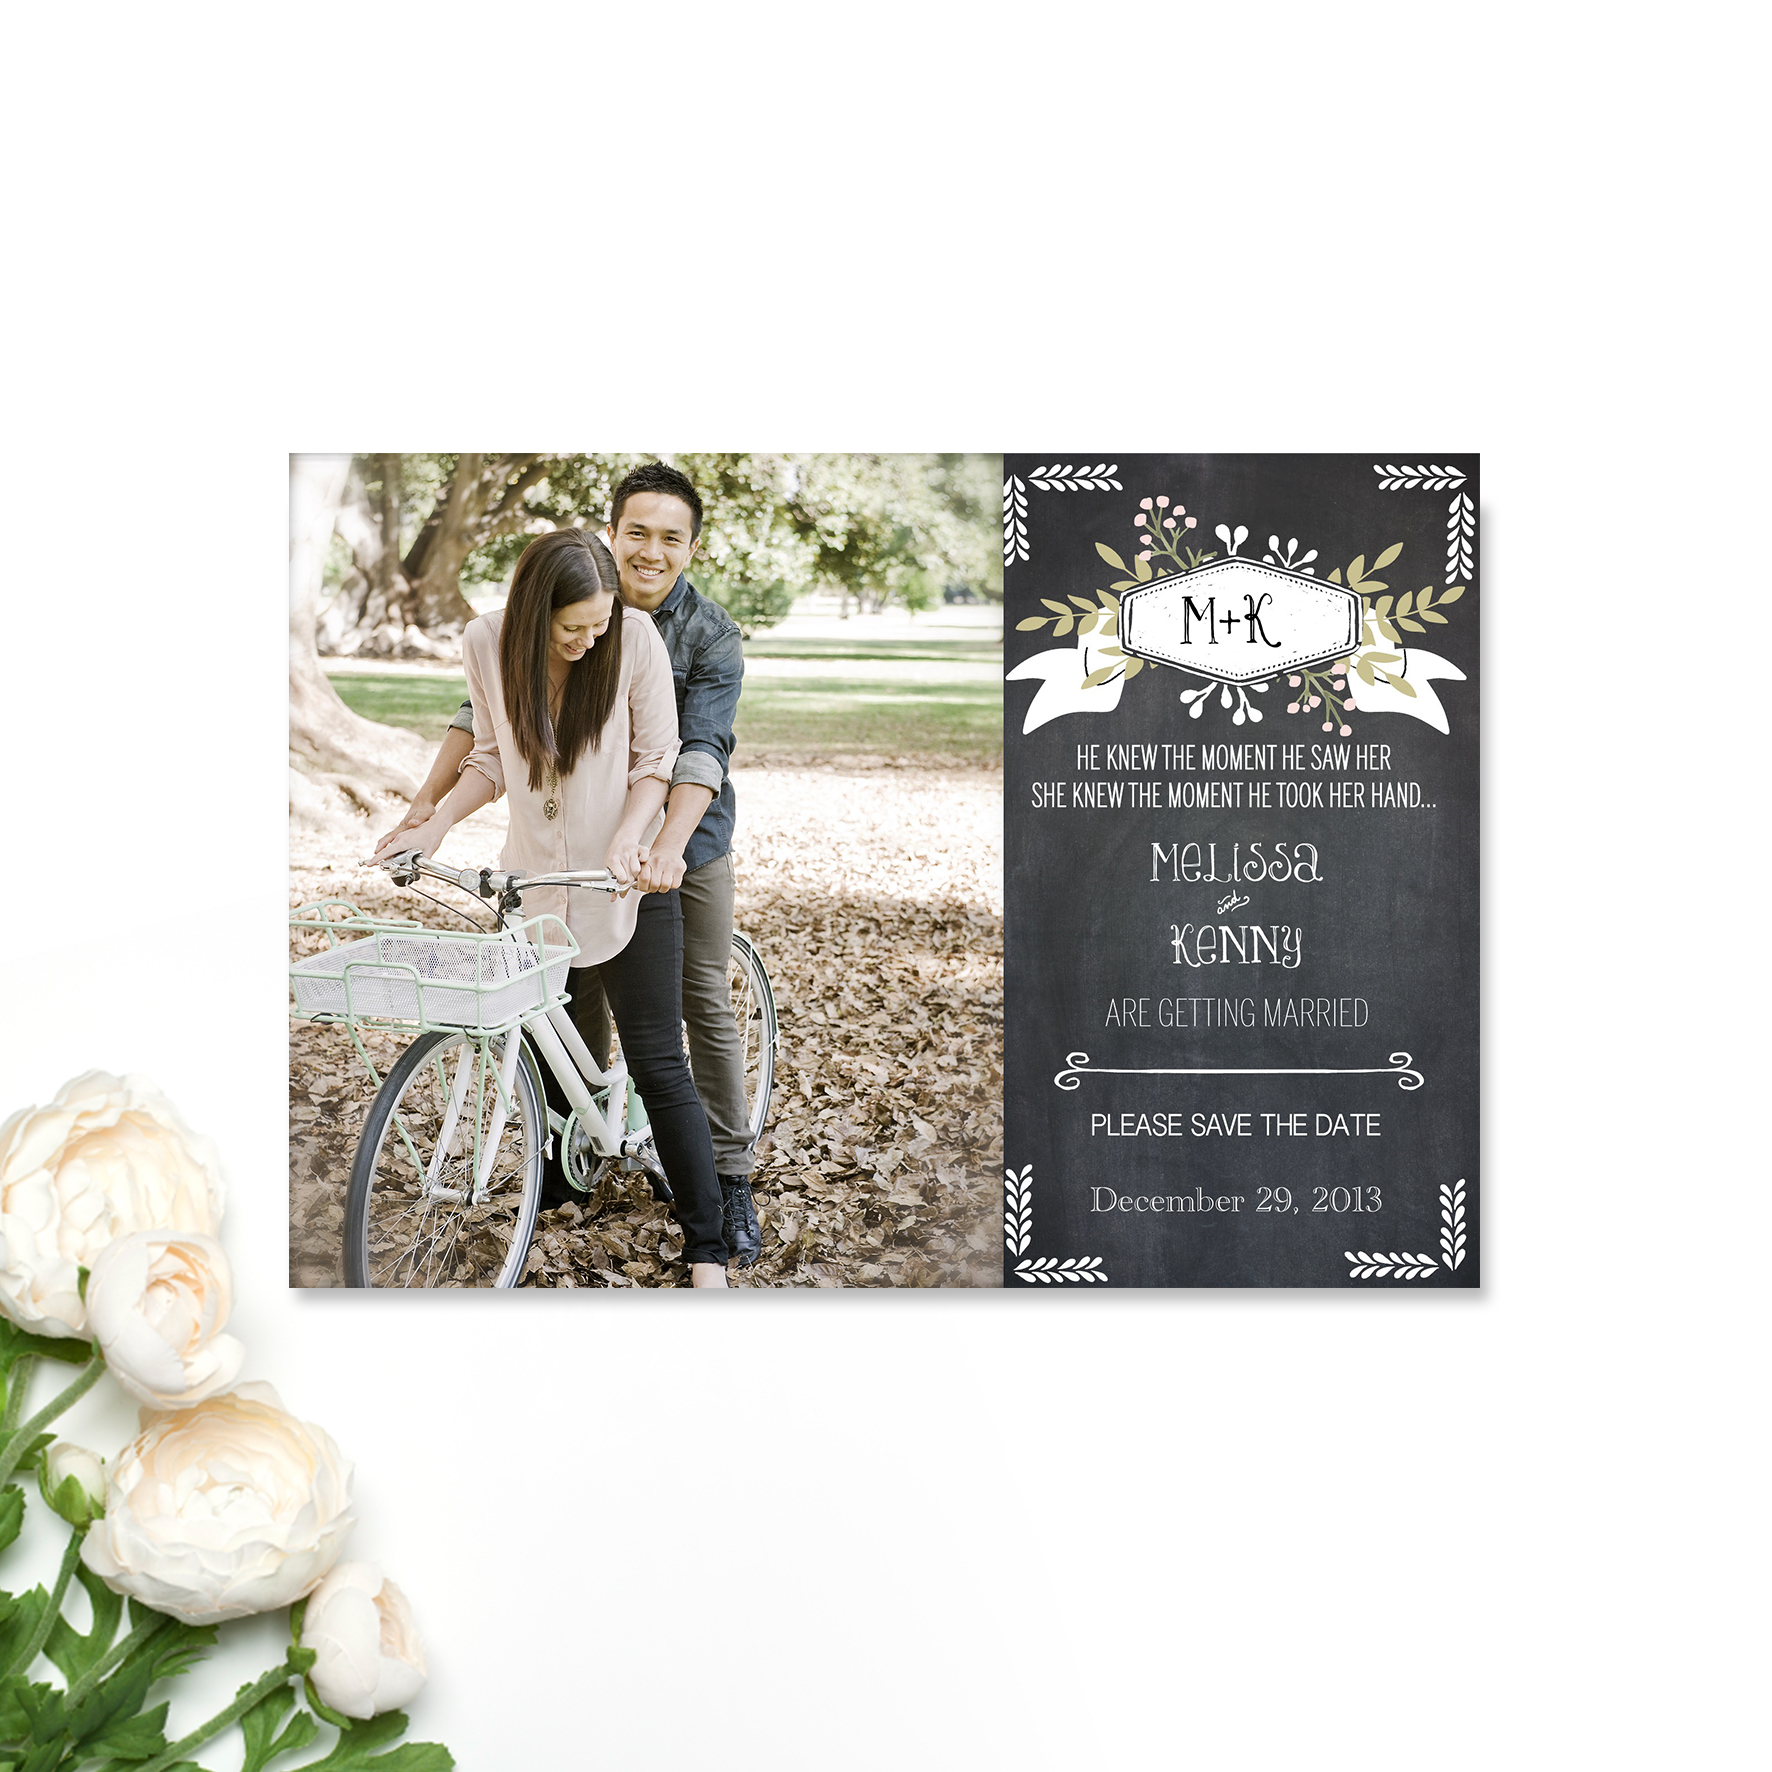 Mel + Kenny Save the Date Card